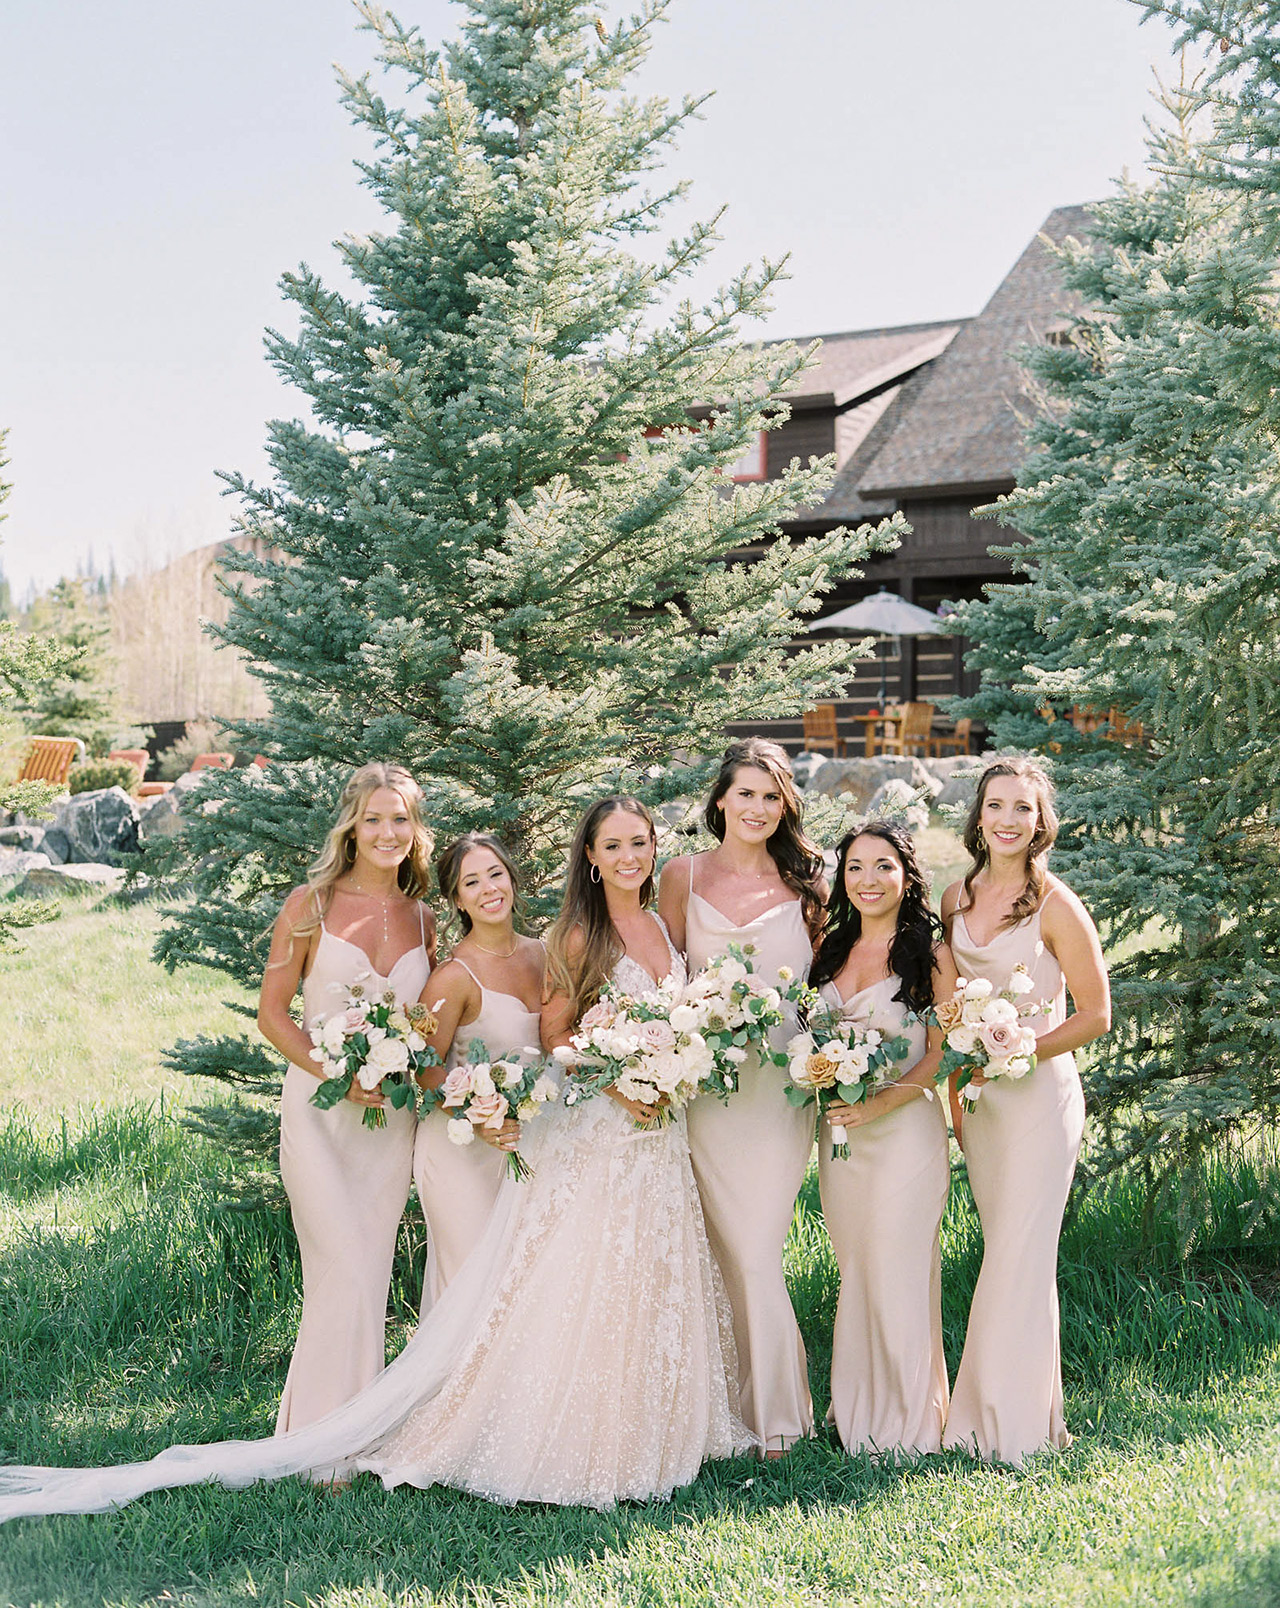 bride bridesmaids champaign colored gowns